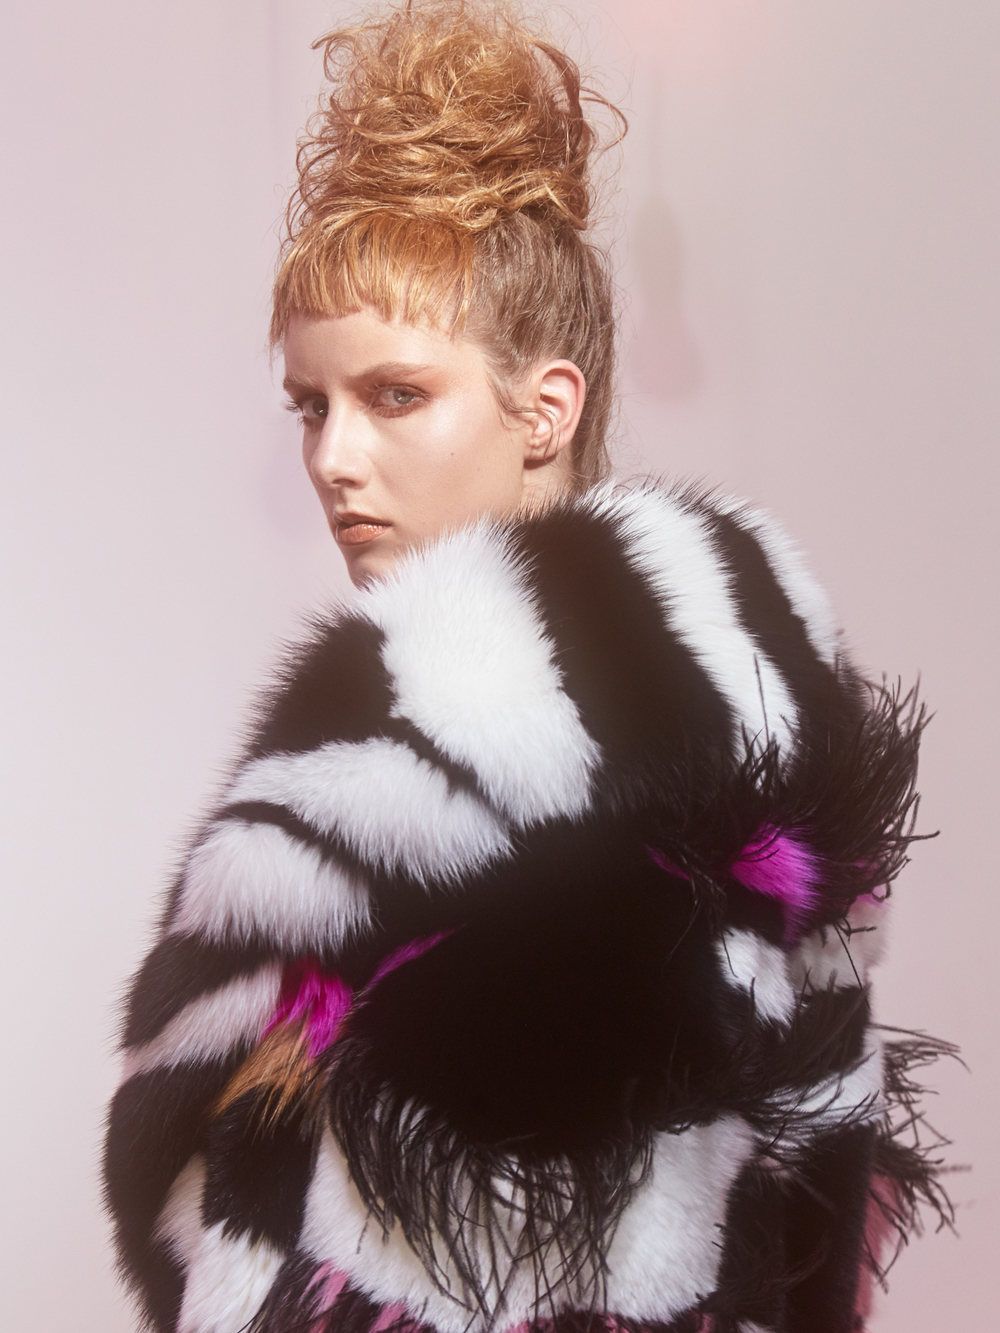 Eddie Coat:  Saga Furs ™  fox and mink with ostrich feather inserts, 100% silk charmeuse lining.